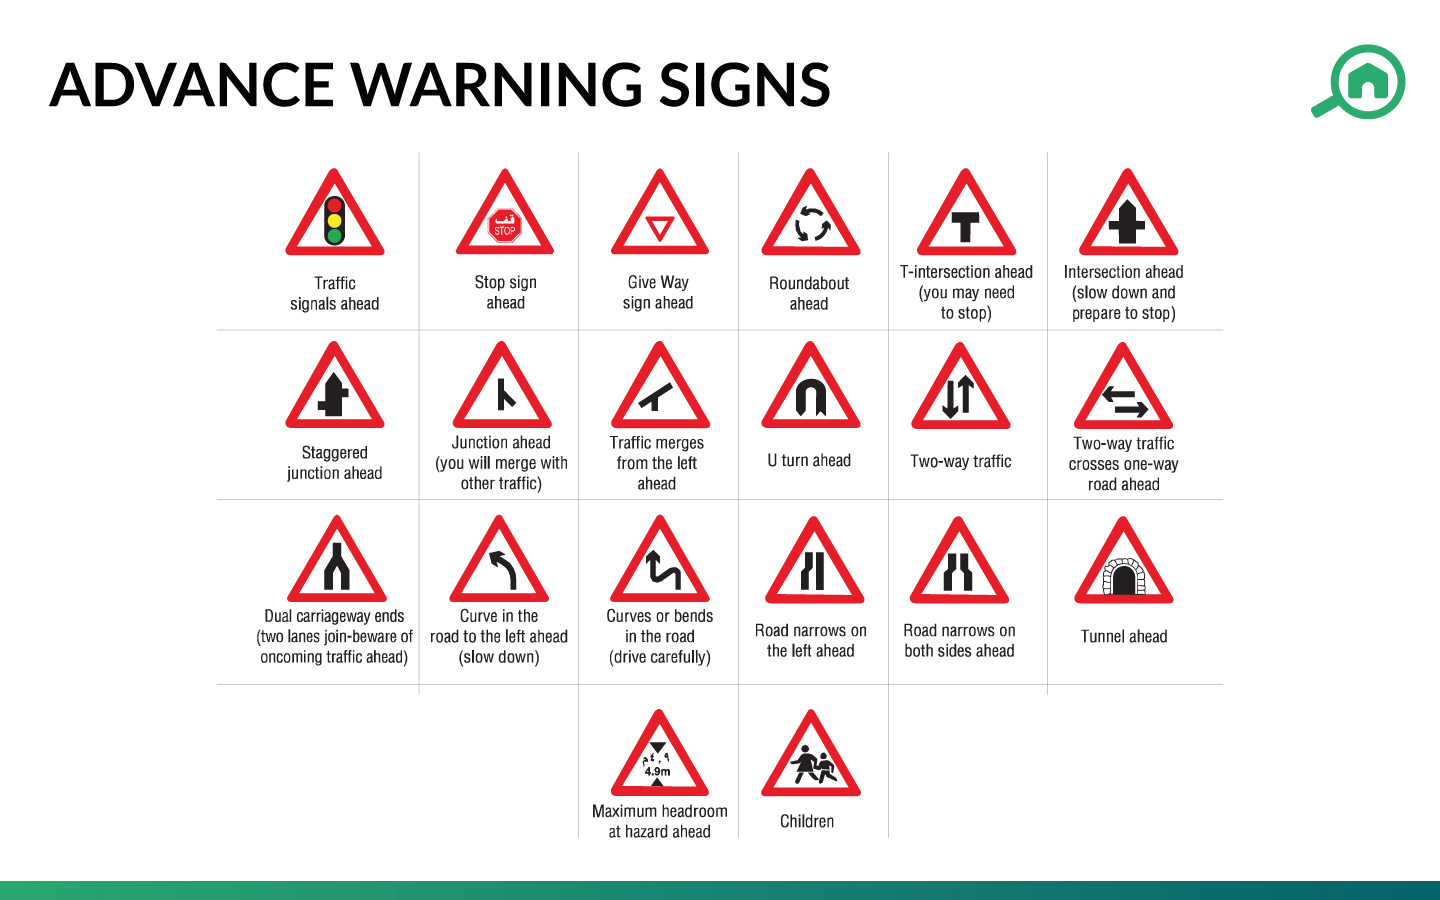 Advance warning traffic signs in the UAE